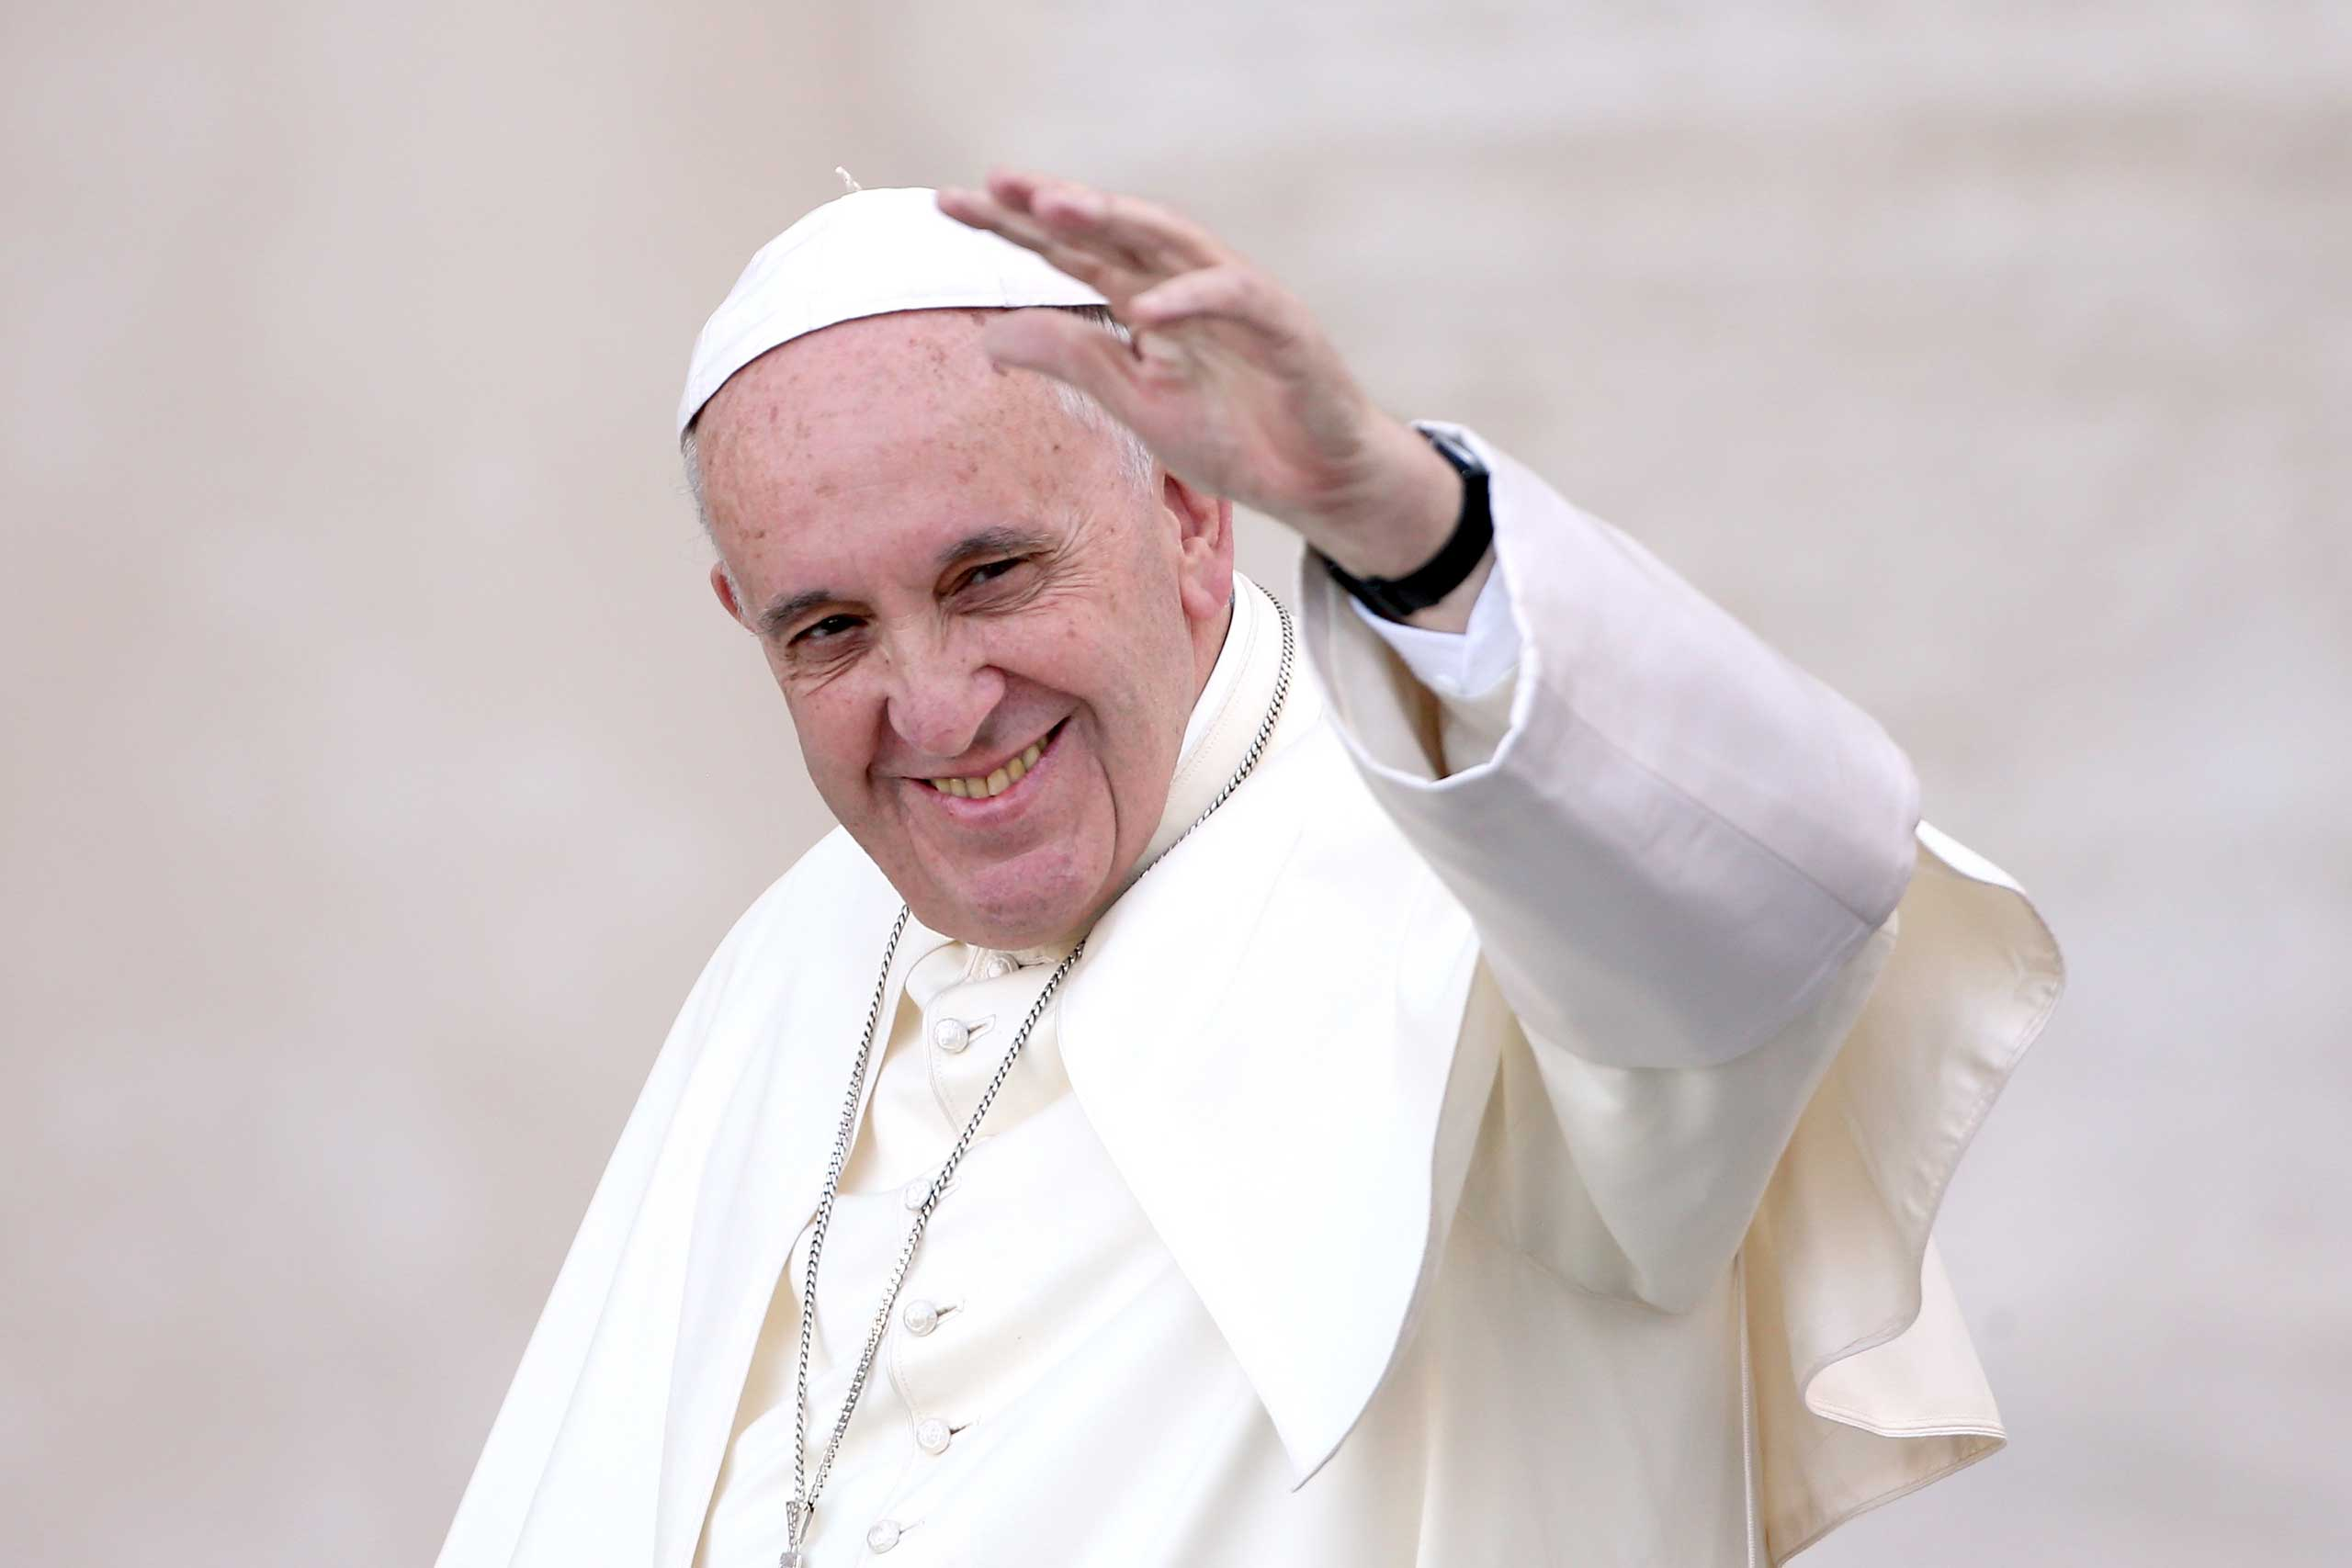 Pope Francis waves as he arrives in St. Peter's Square for an audience with thousands of altar servers from around Europe on August 4, 2015 in Vatican City, Vatican.